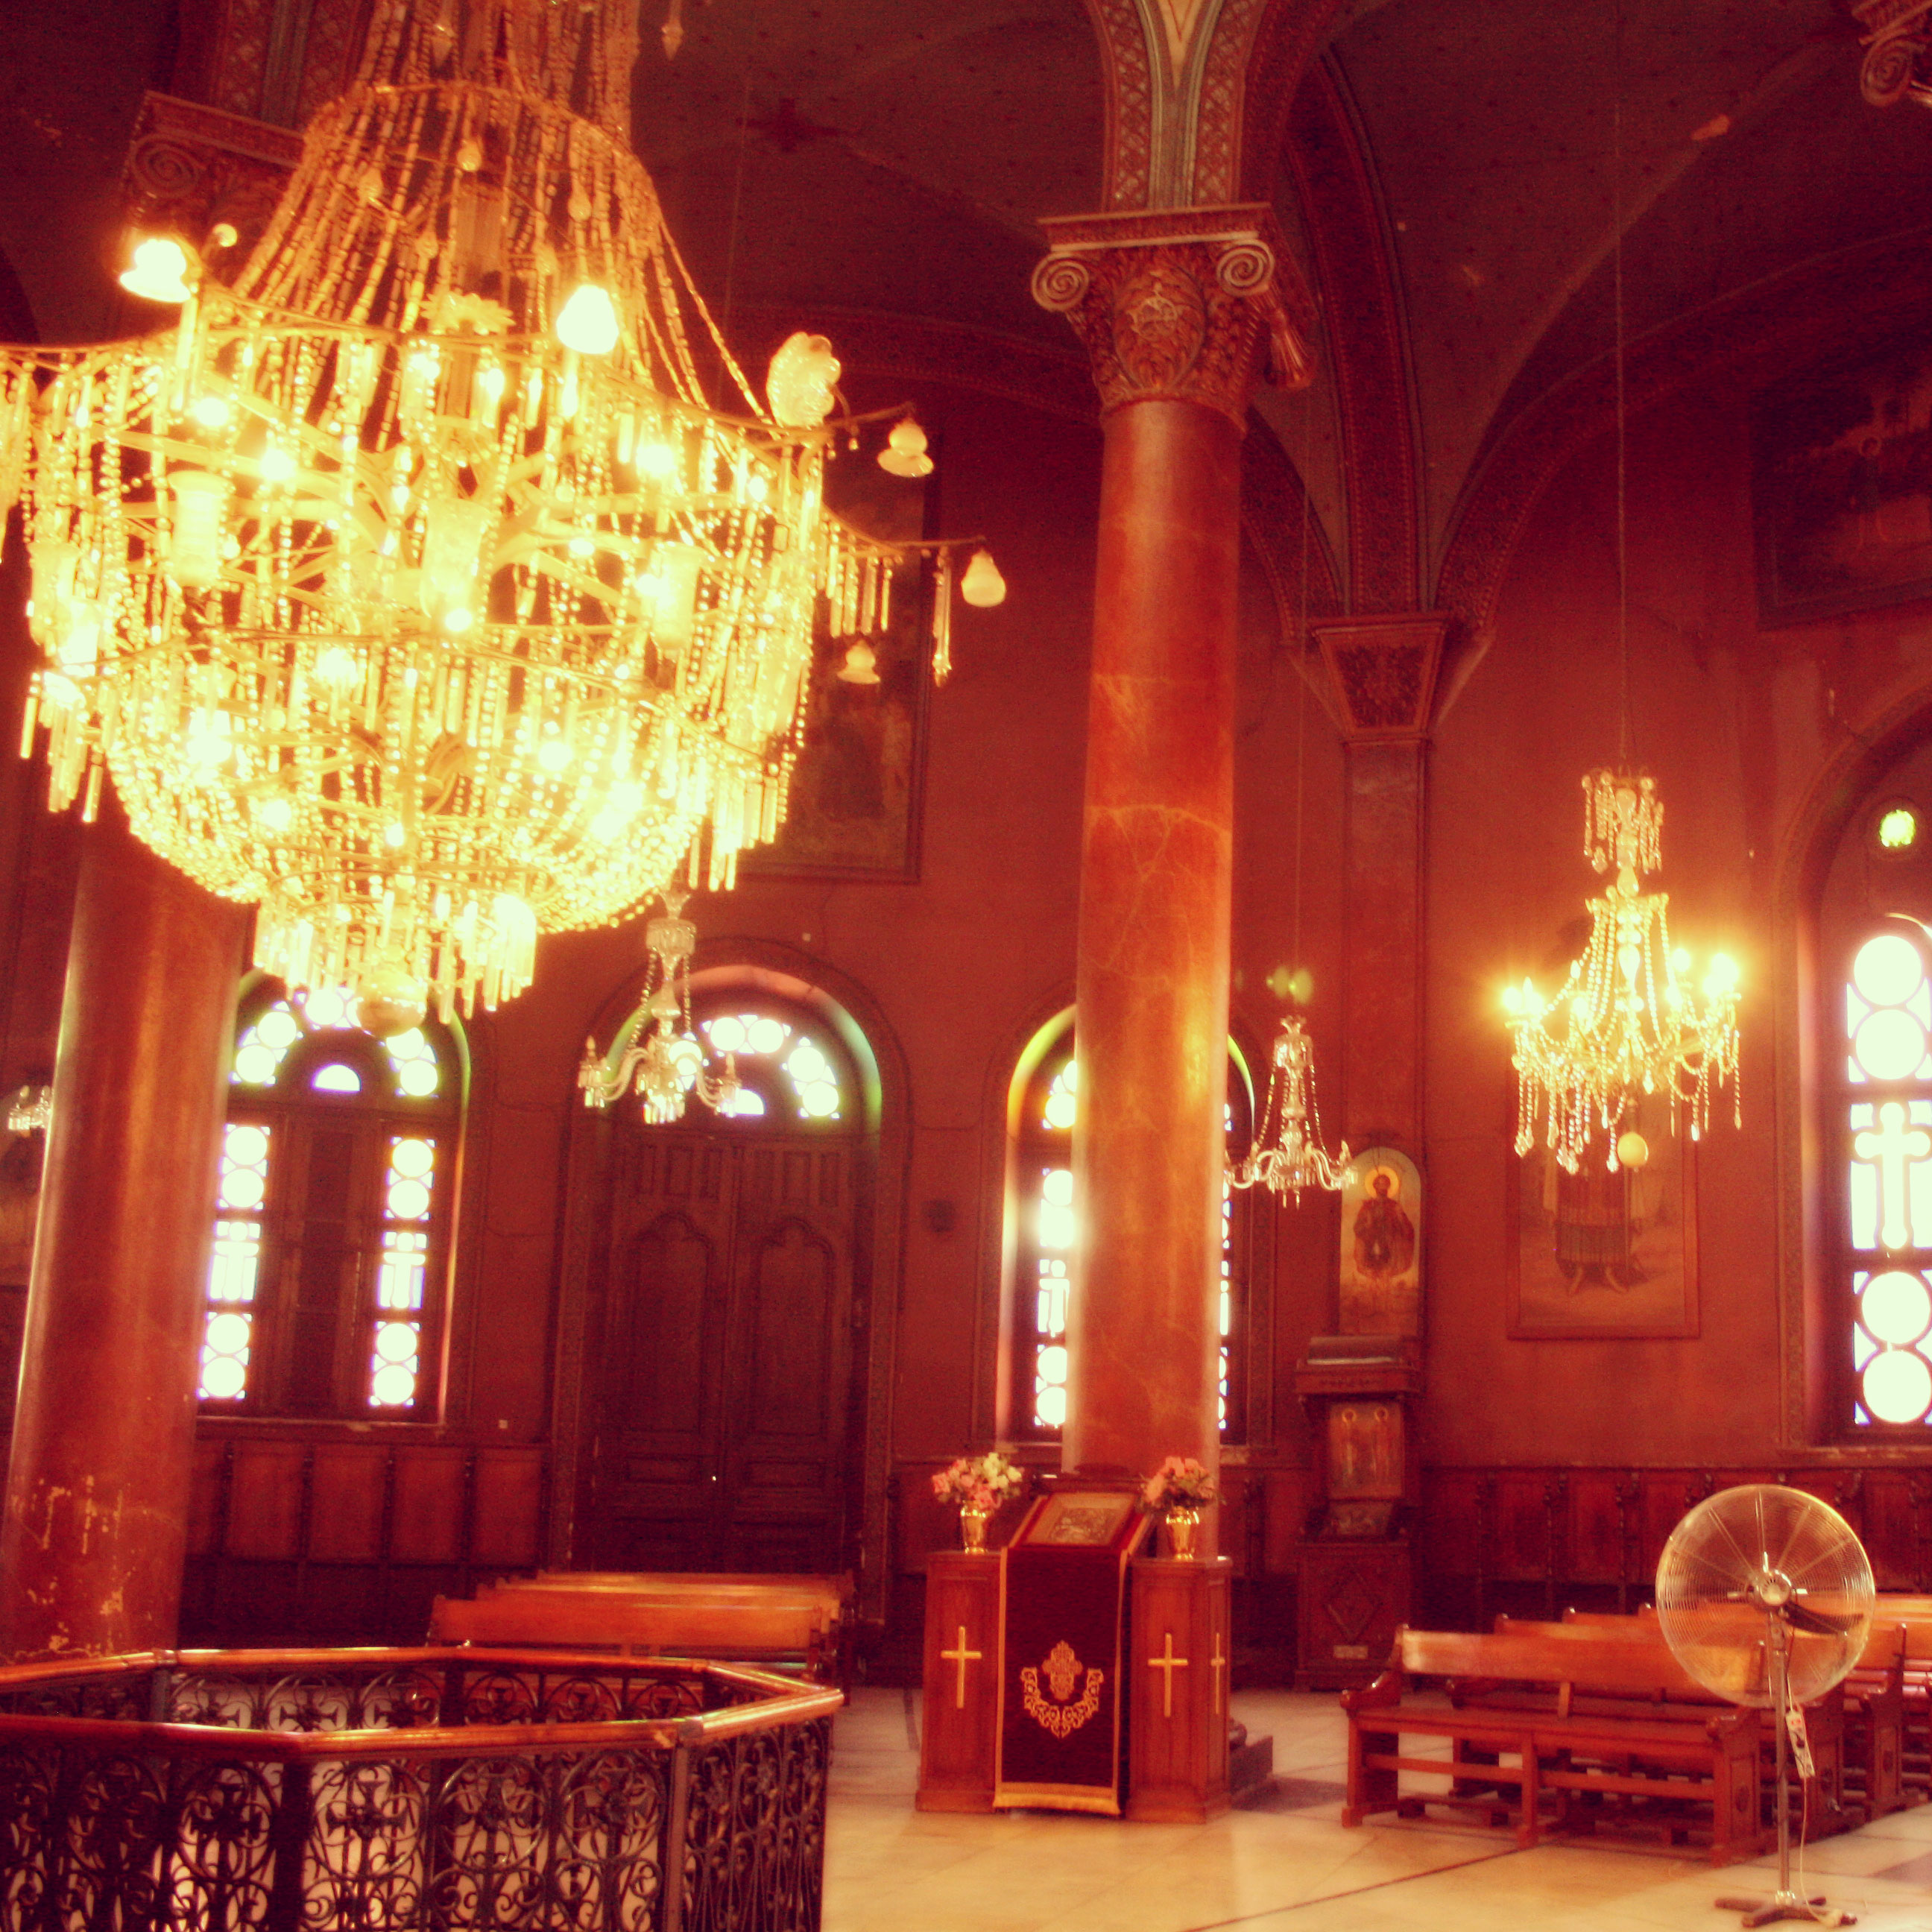 St._George,_greek_coptic_church,_Old_Cairo,_Egypt4